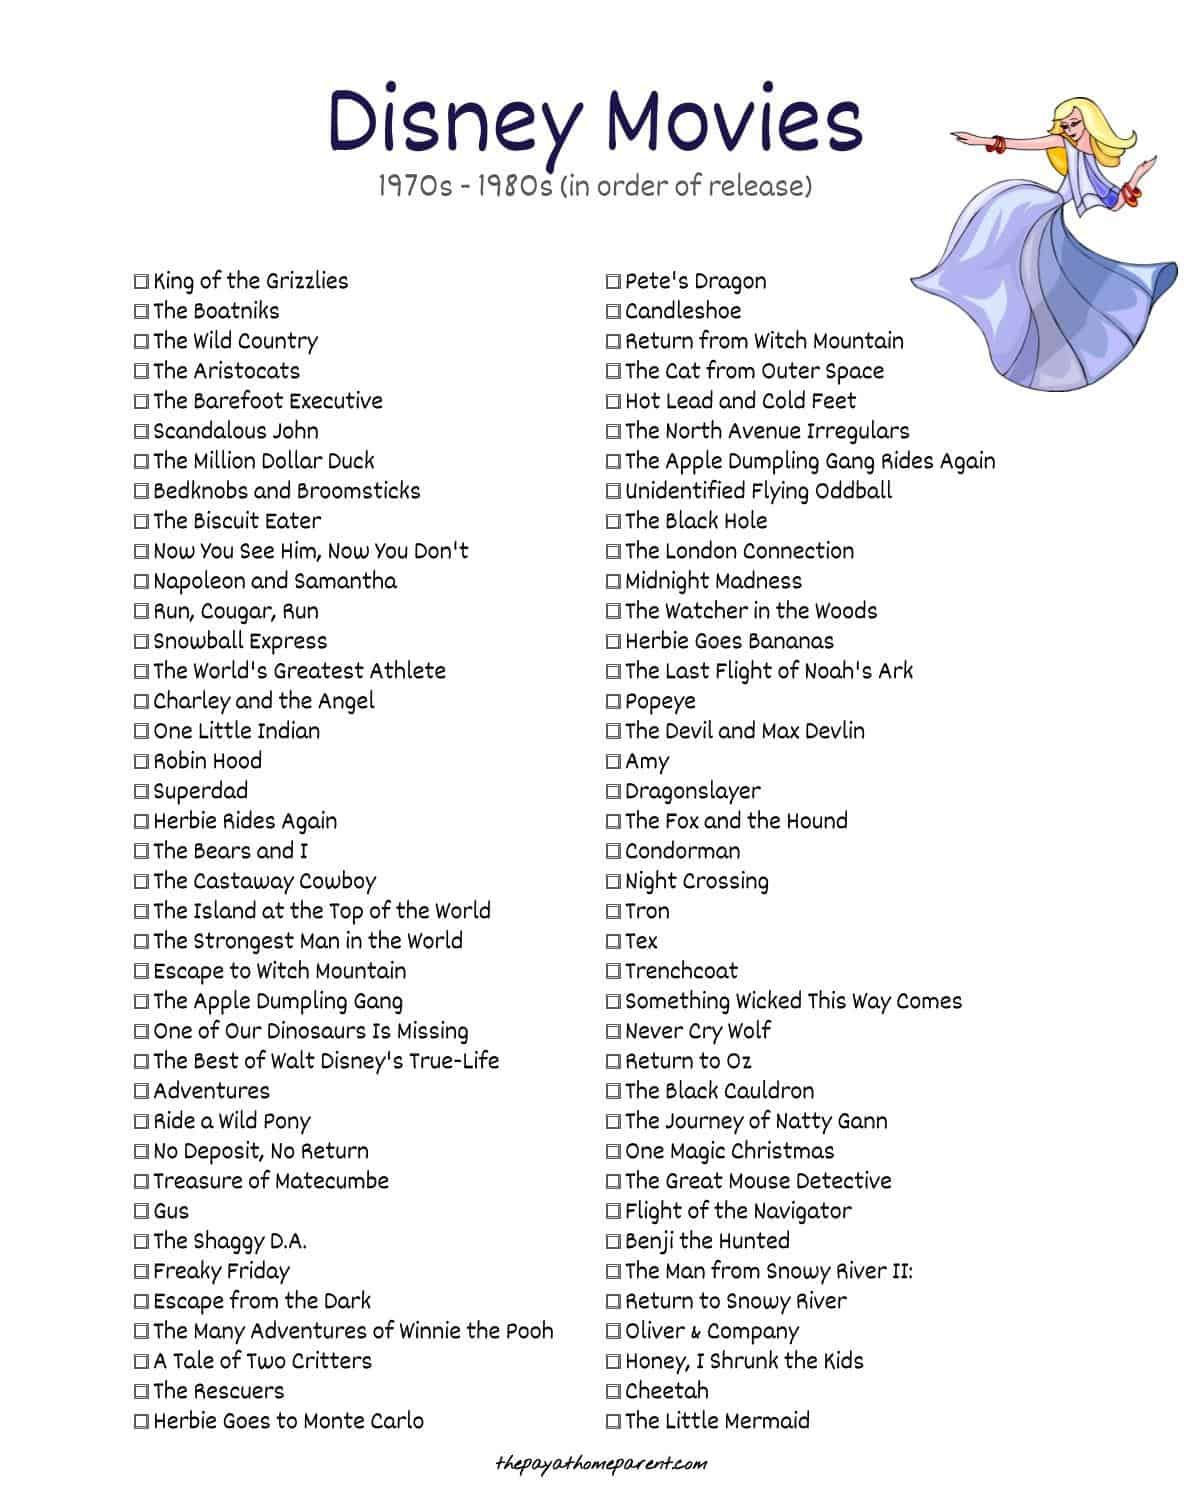 List of Disney Films - The Aristocats, Robin Hood, The Apple Dumpling Gang, The Rescuers, Return to Oz, Oliver & Company and The Little Mermaid are all part of this list of Disney films - along with many more!